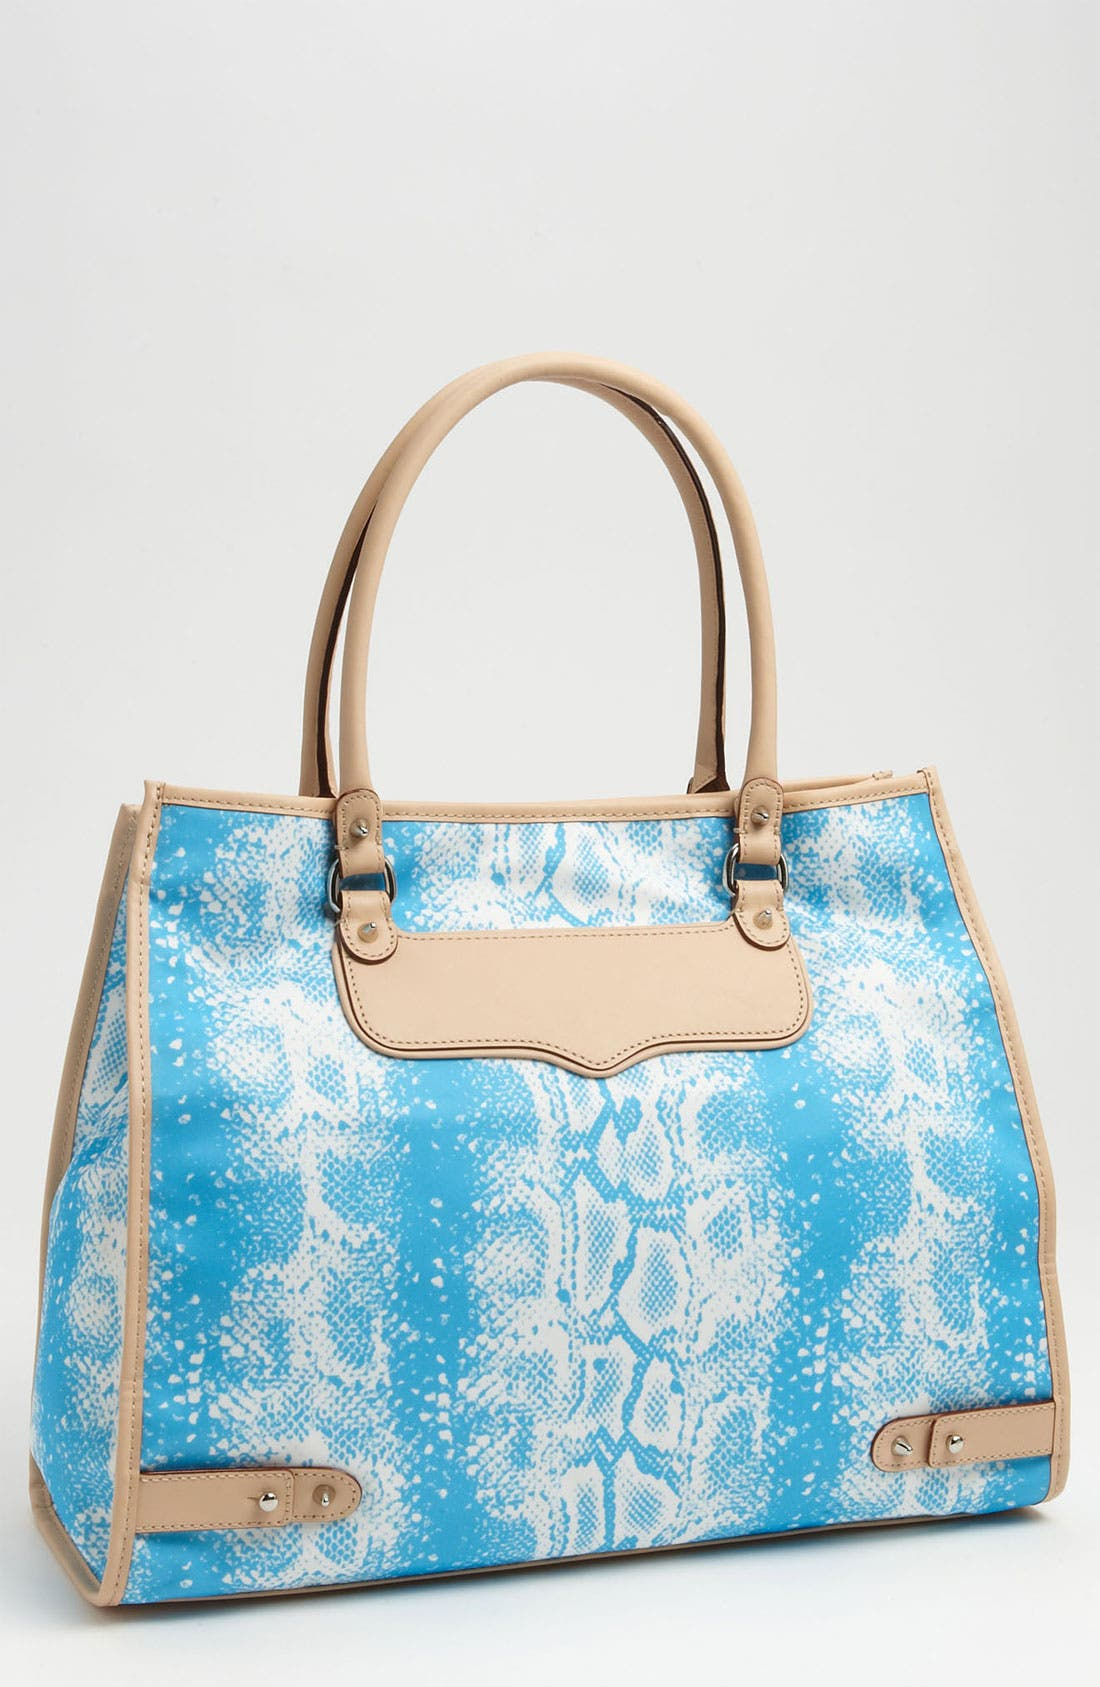 Alternate Image 1 Selected - Rebecca Minkoff 'Diamond' Snakeskin Print Tote